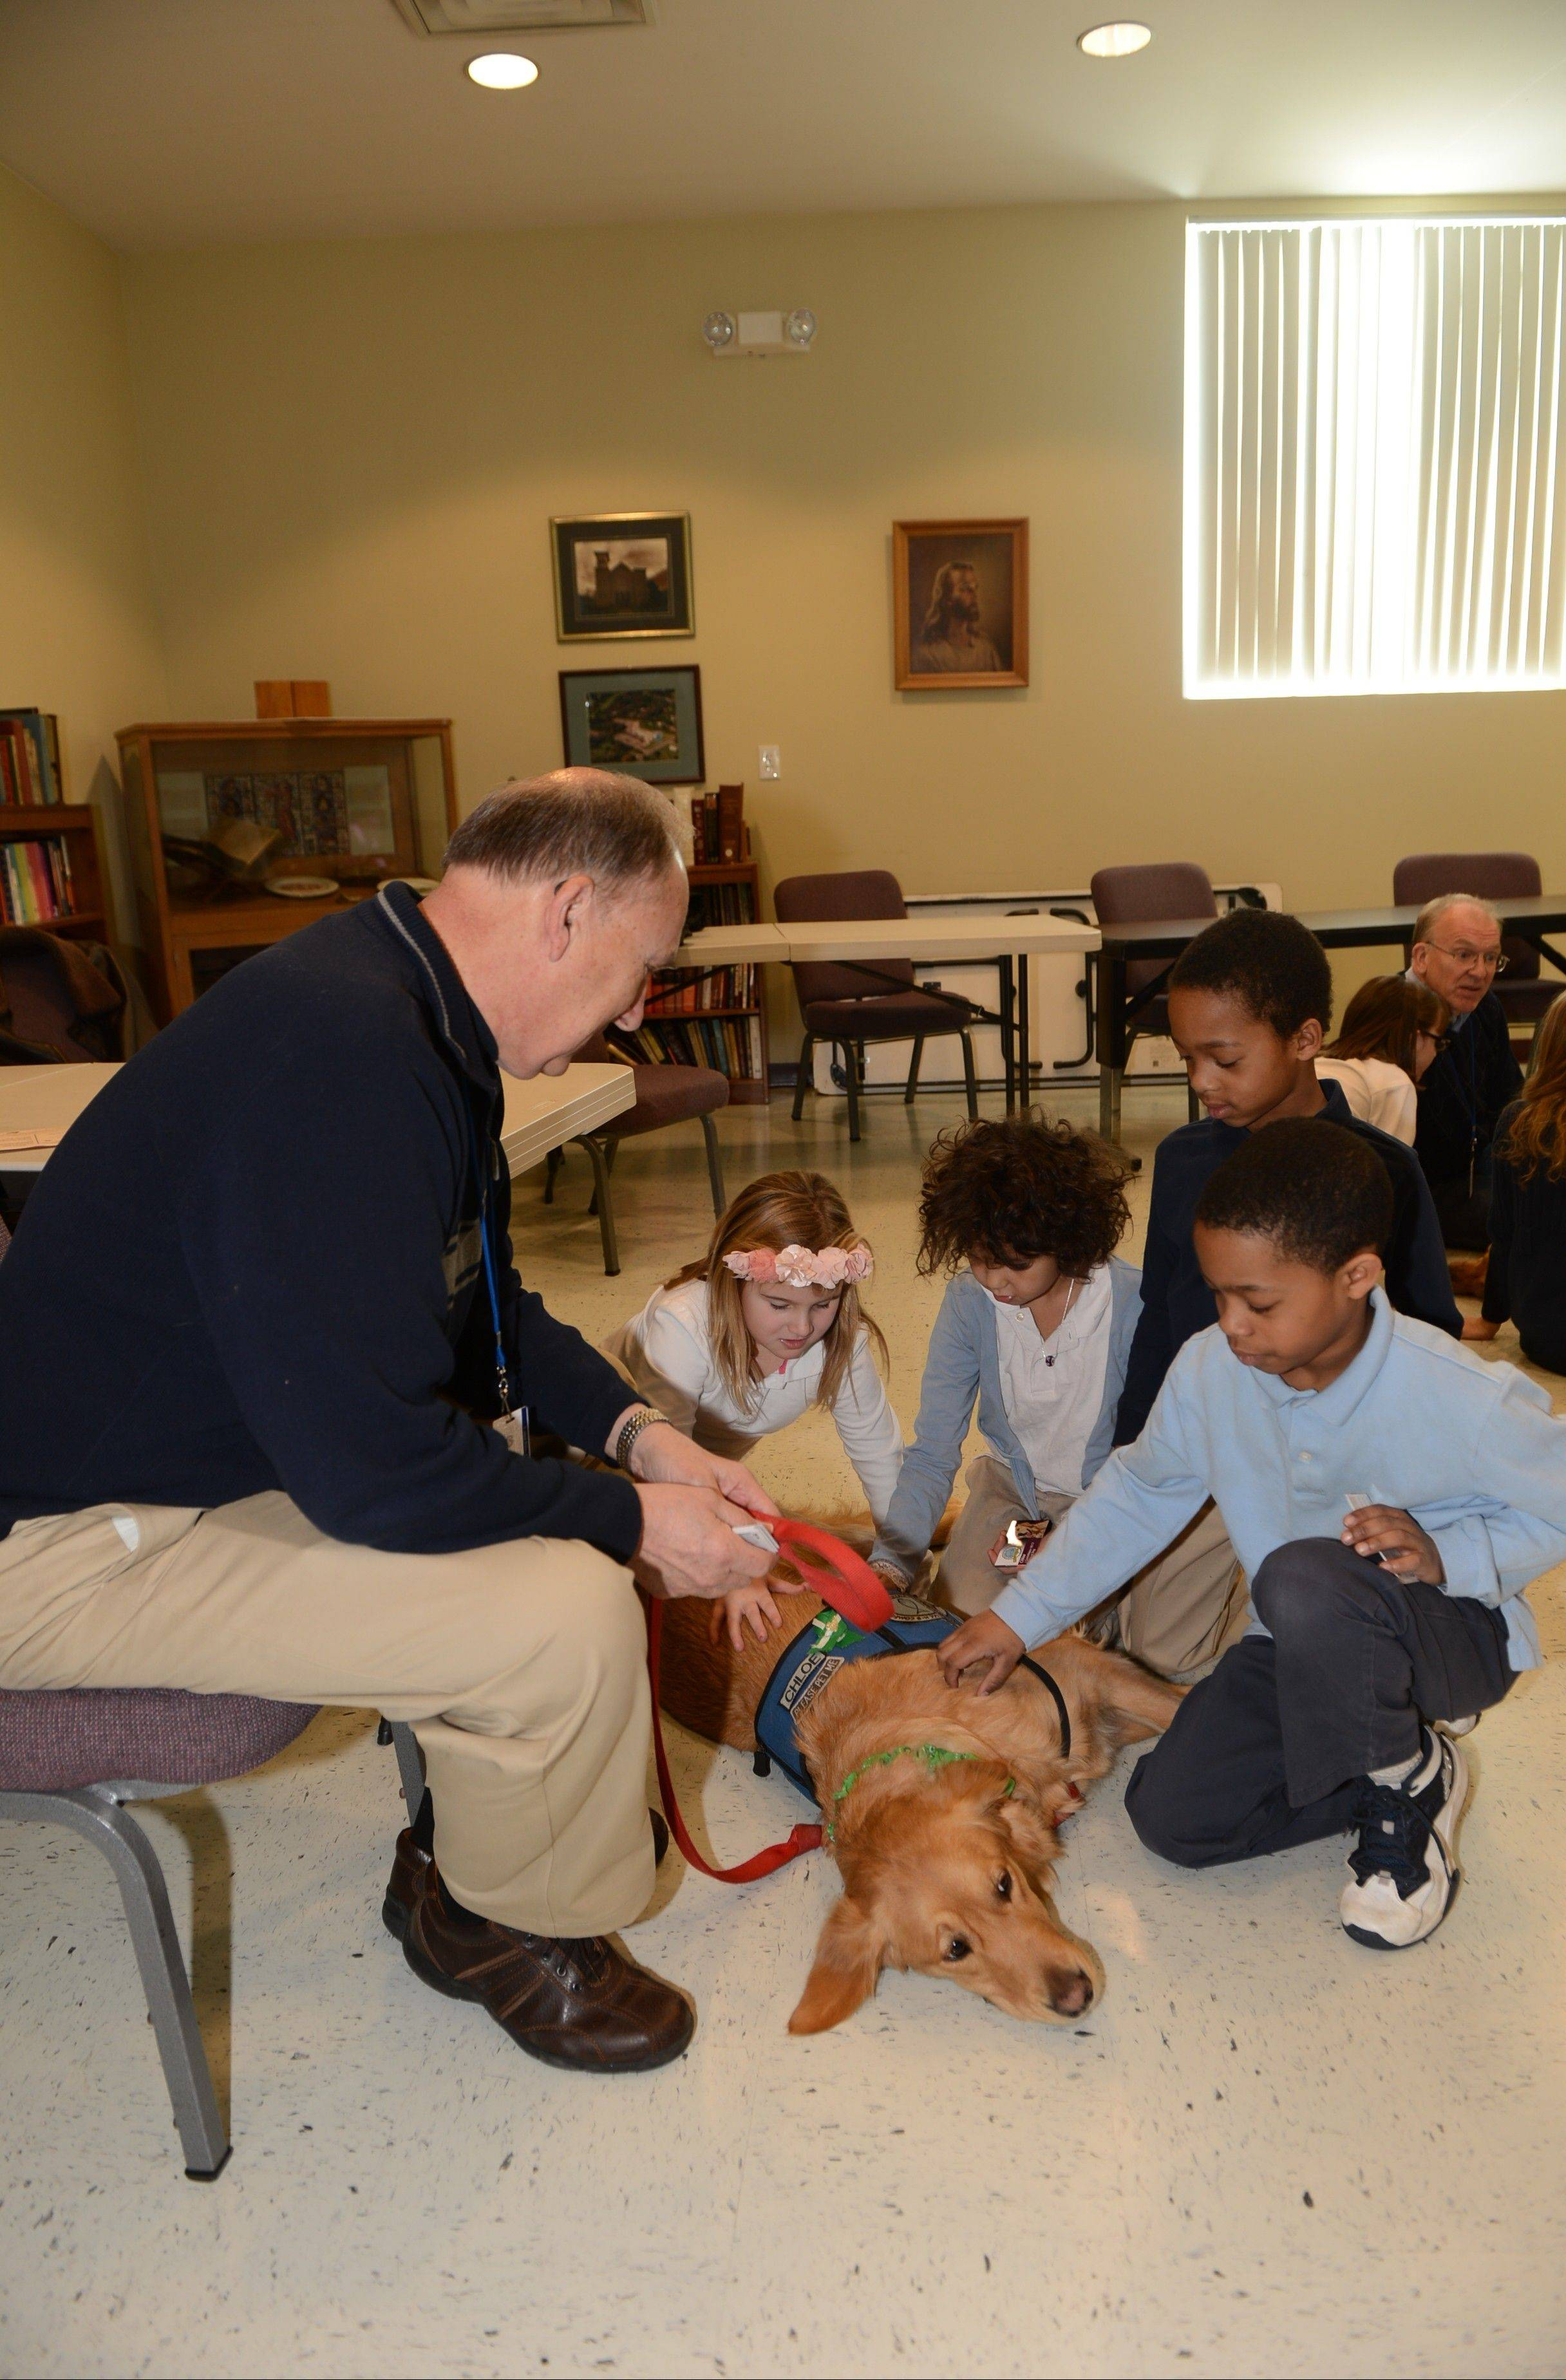 George Schiestel of Arlington Heights and comfort dog JoJo visit with children at the Lutheran school in Danbury, Conn., this month following the school shootings in nearby Newtown. They also visited children who were in the school where the shootings occurred.